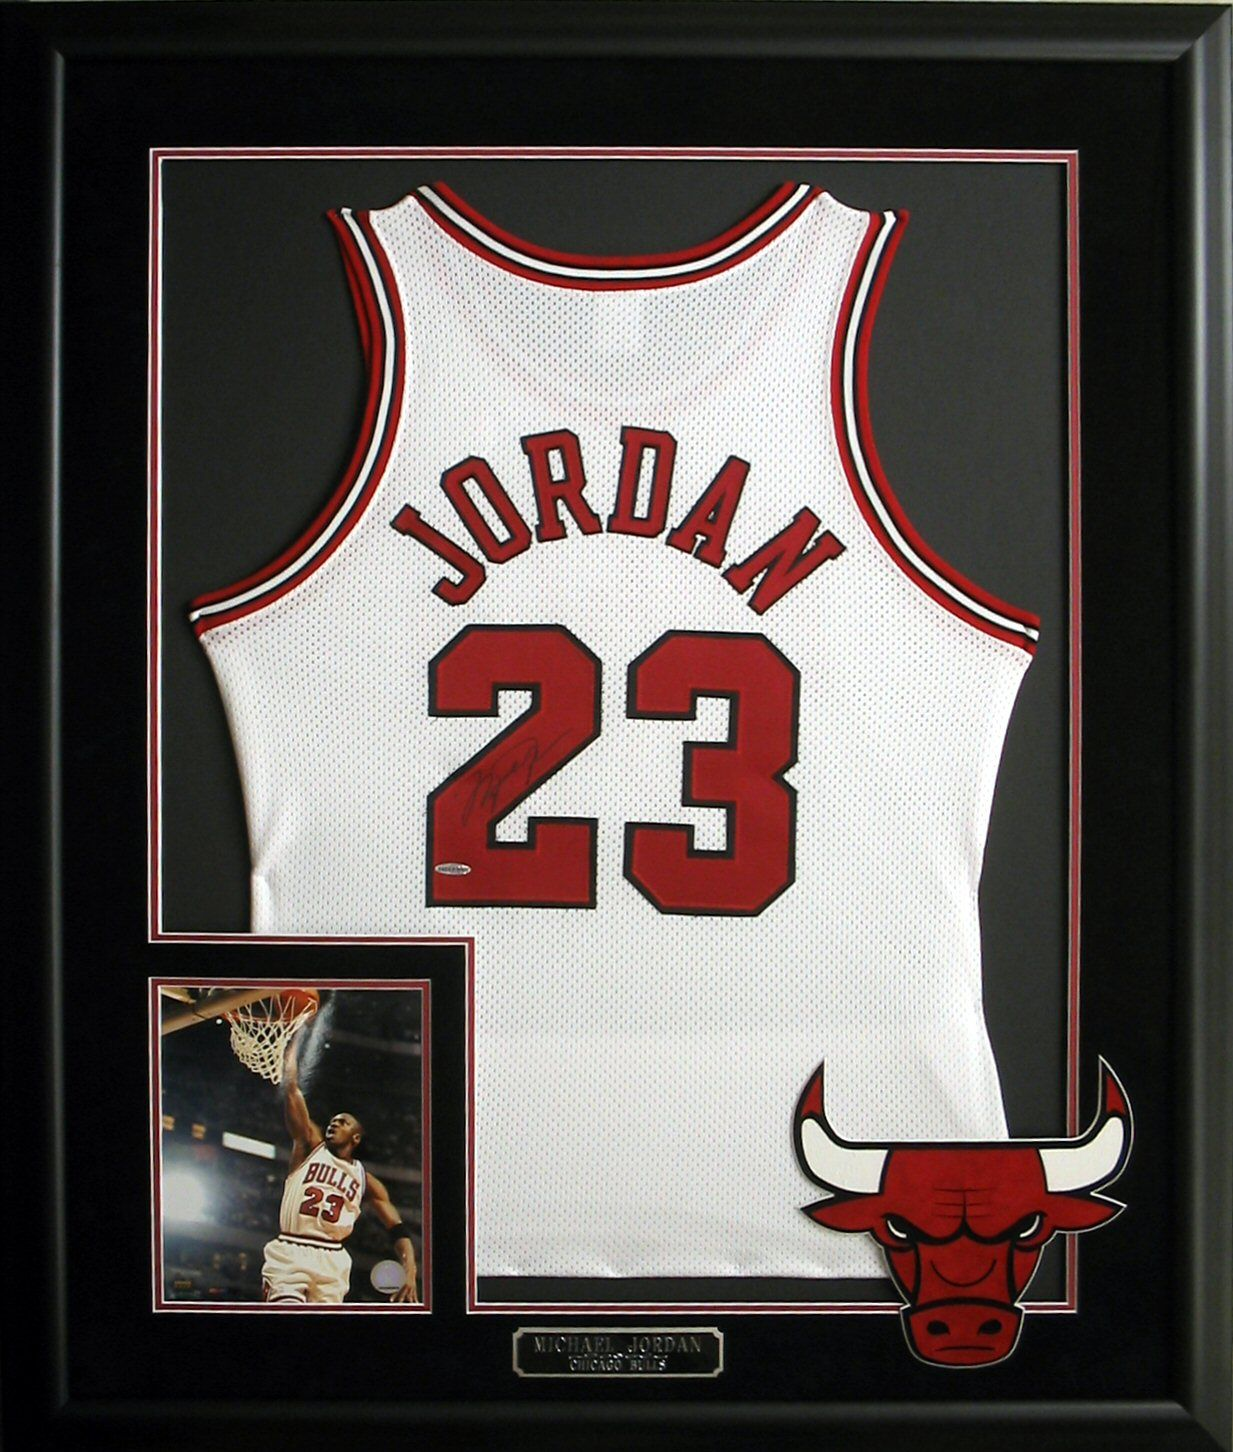 c8b7777e967 Michael Jordan autographed and framed jersey with photo and plate.   ChicagoBulls…